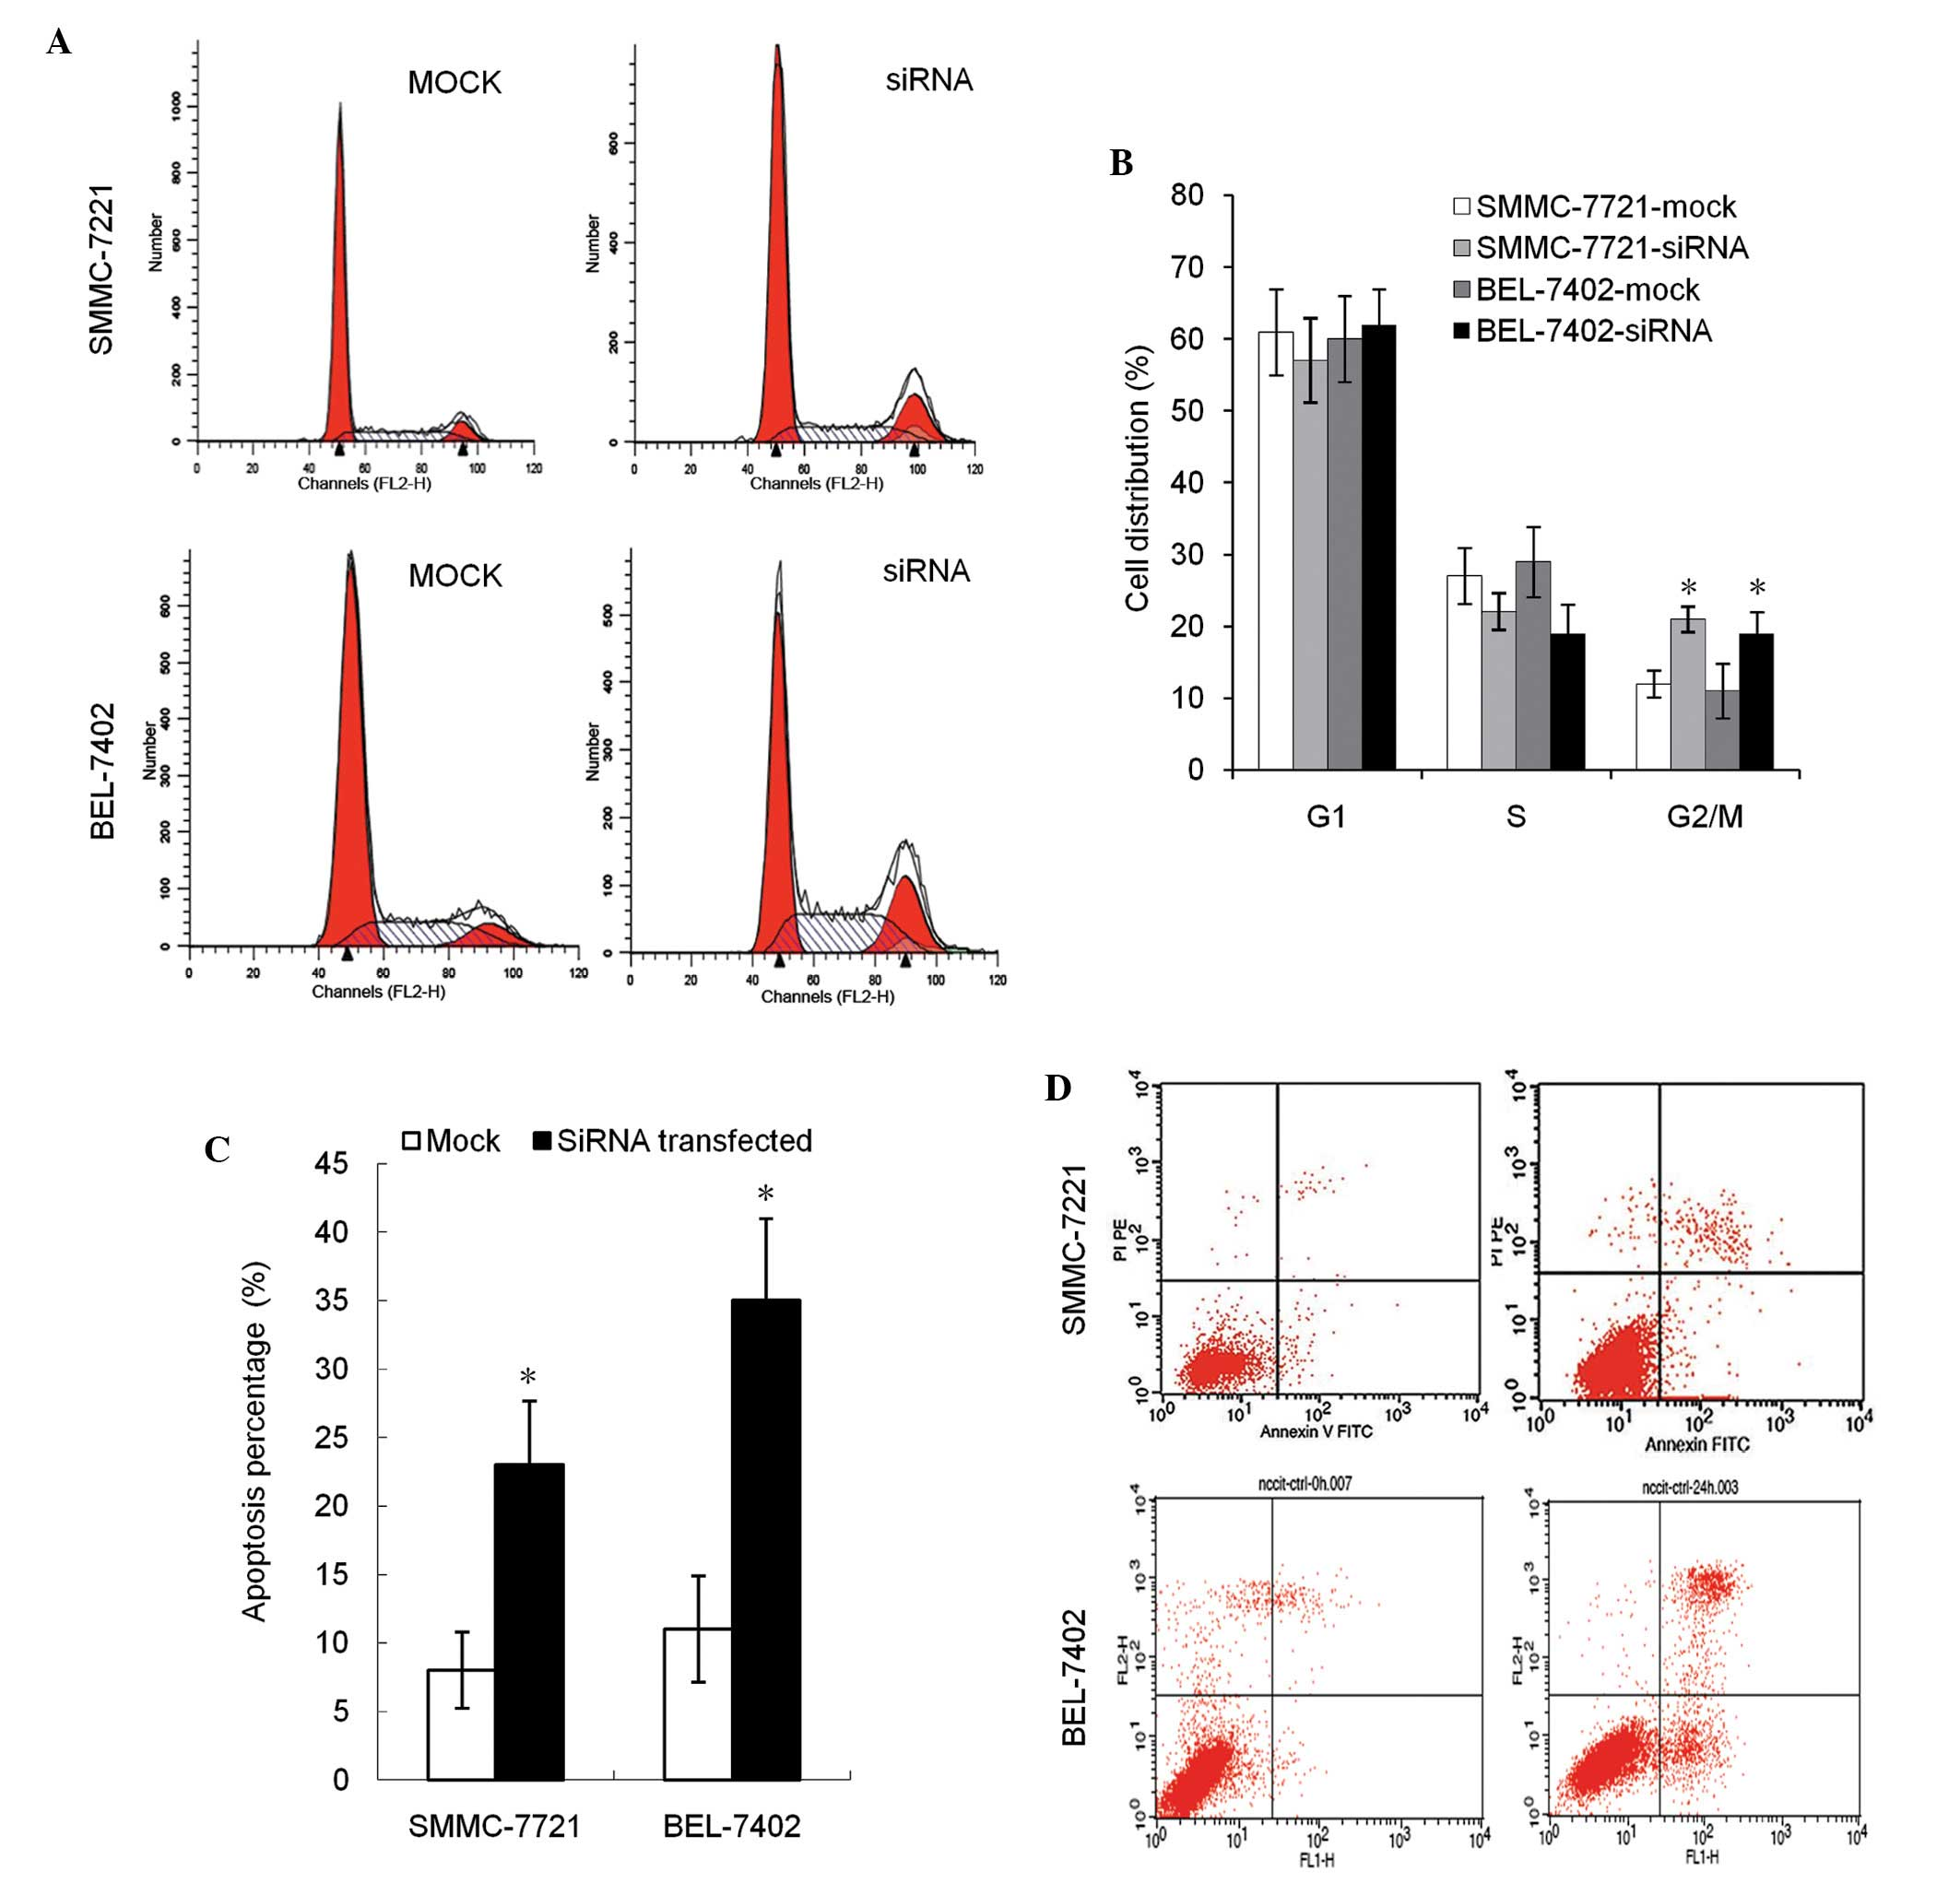 m6A methyltransferase METTL3 maintains colon cancer